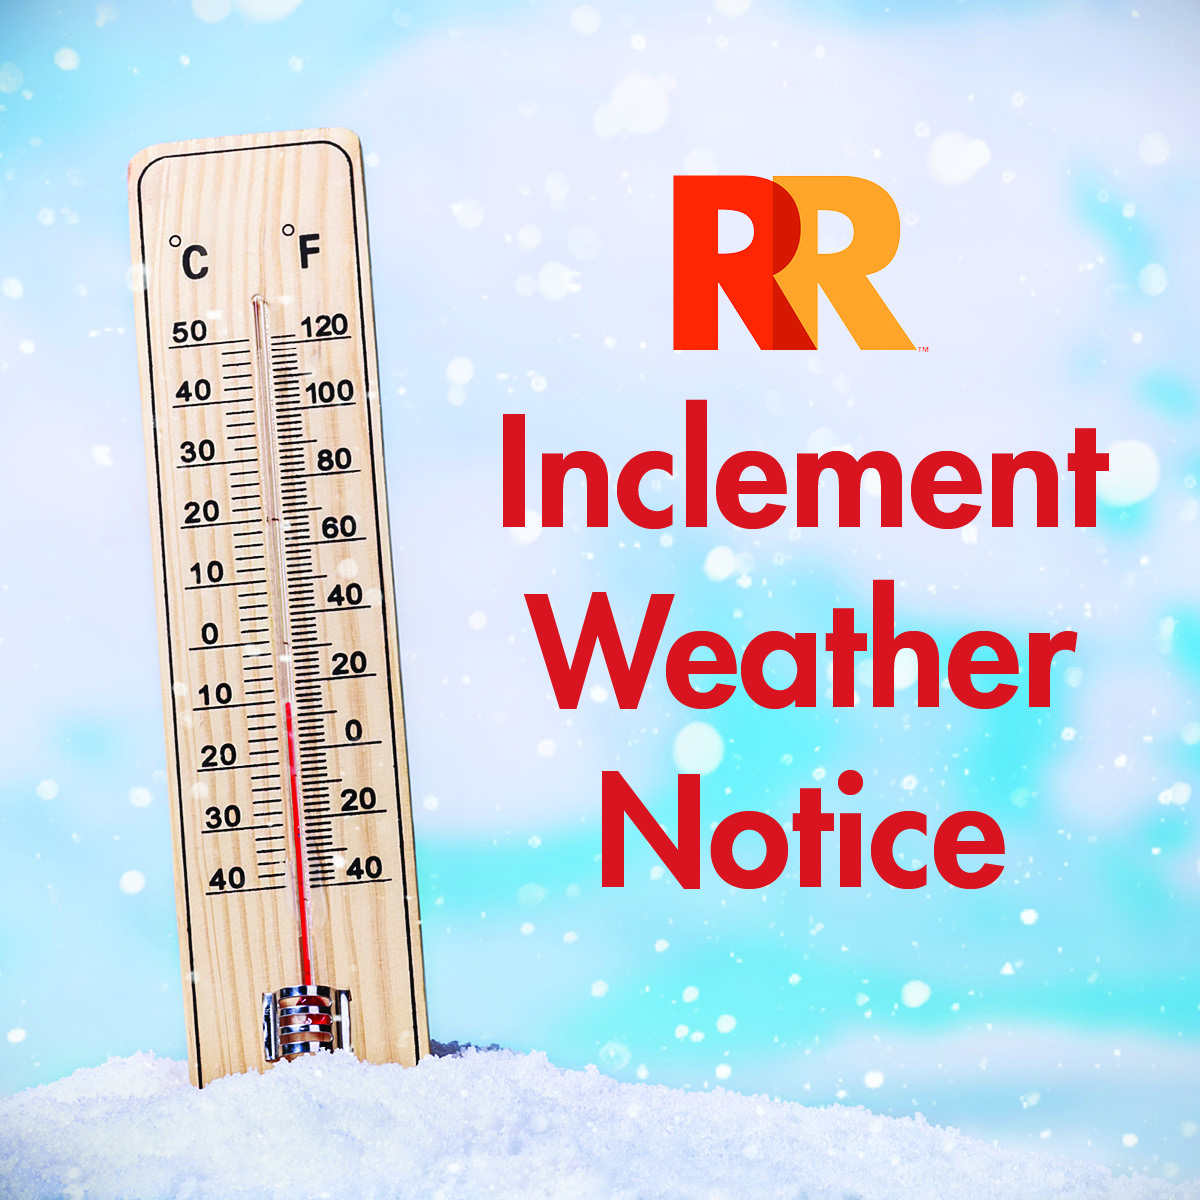 Inclement Weather Notice Graphic